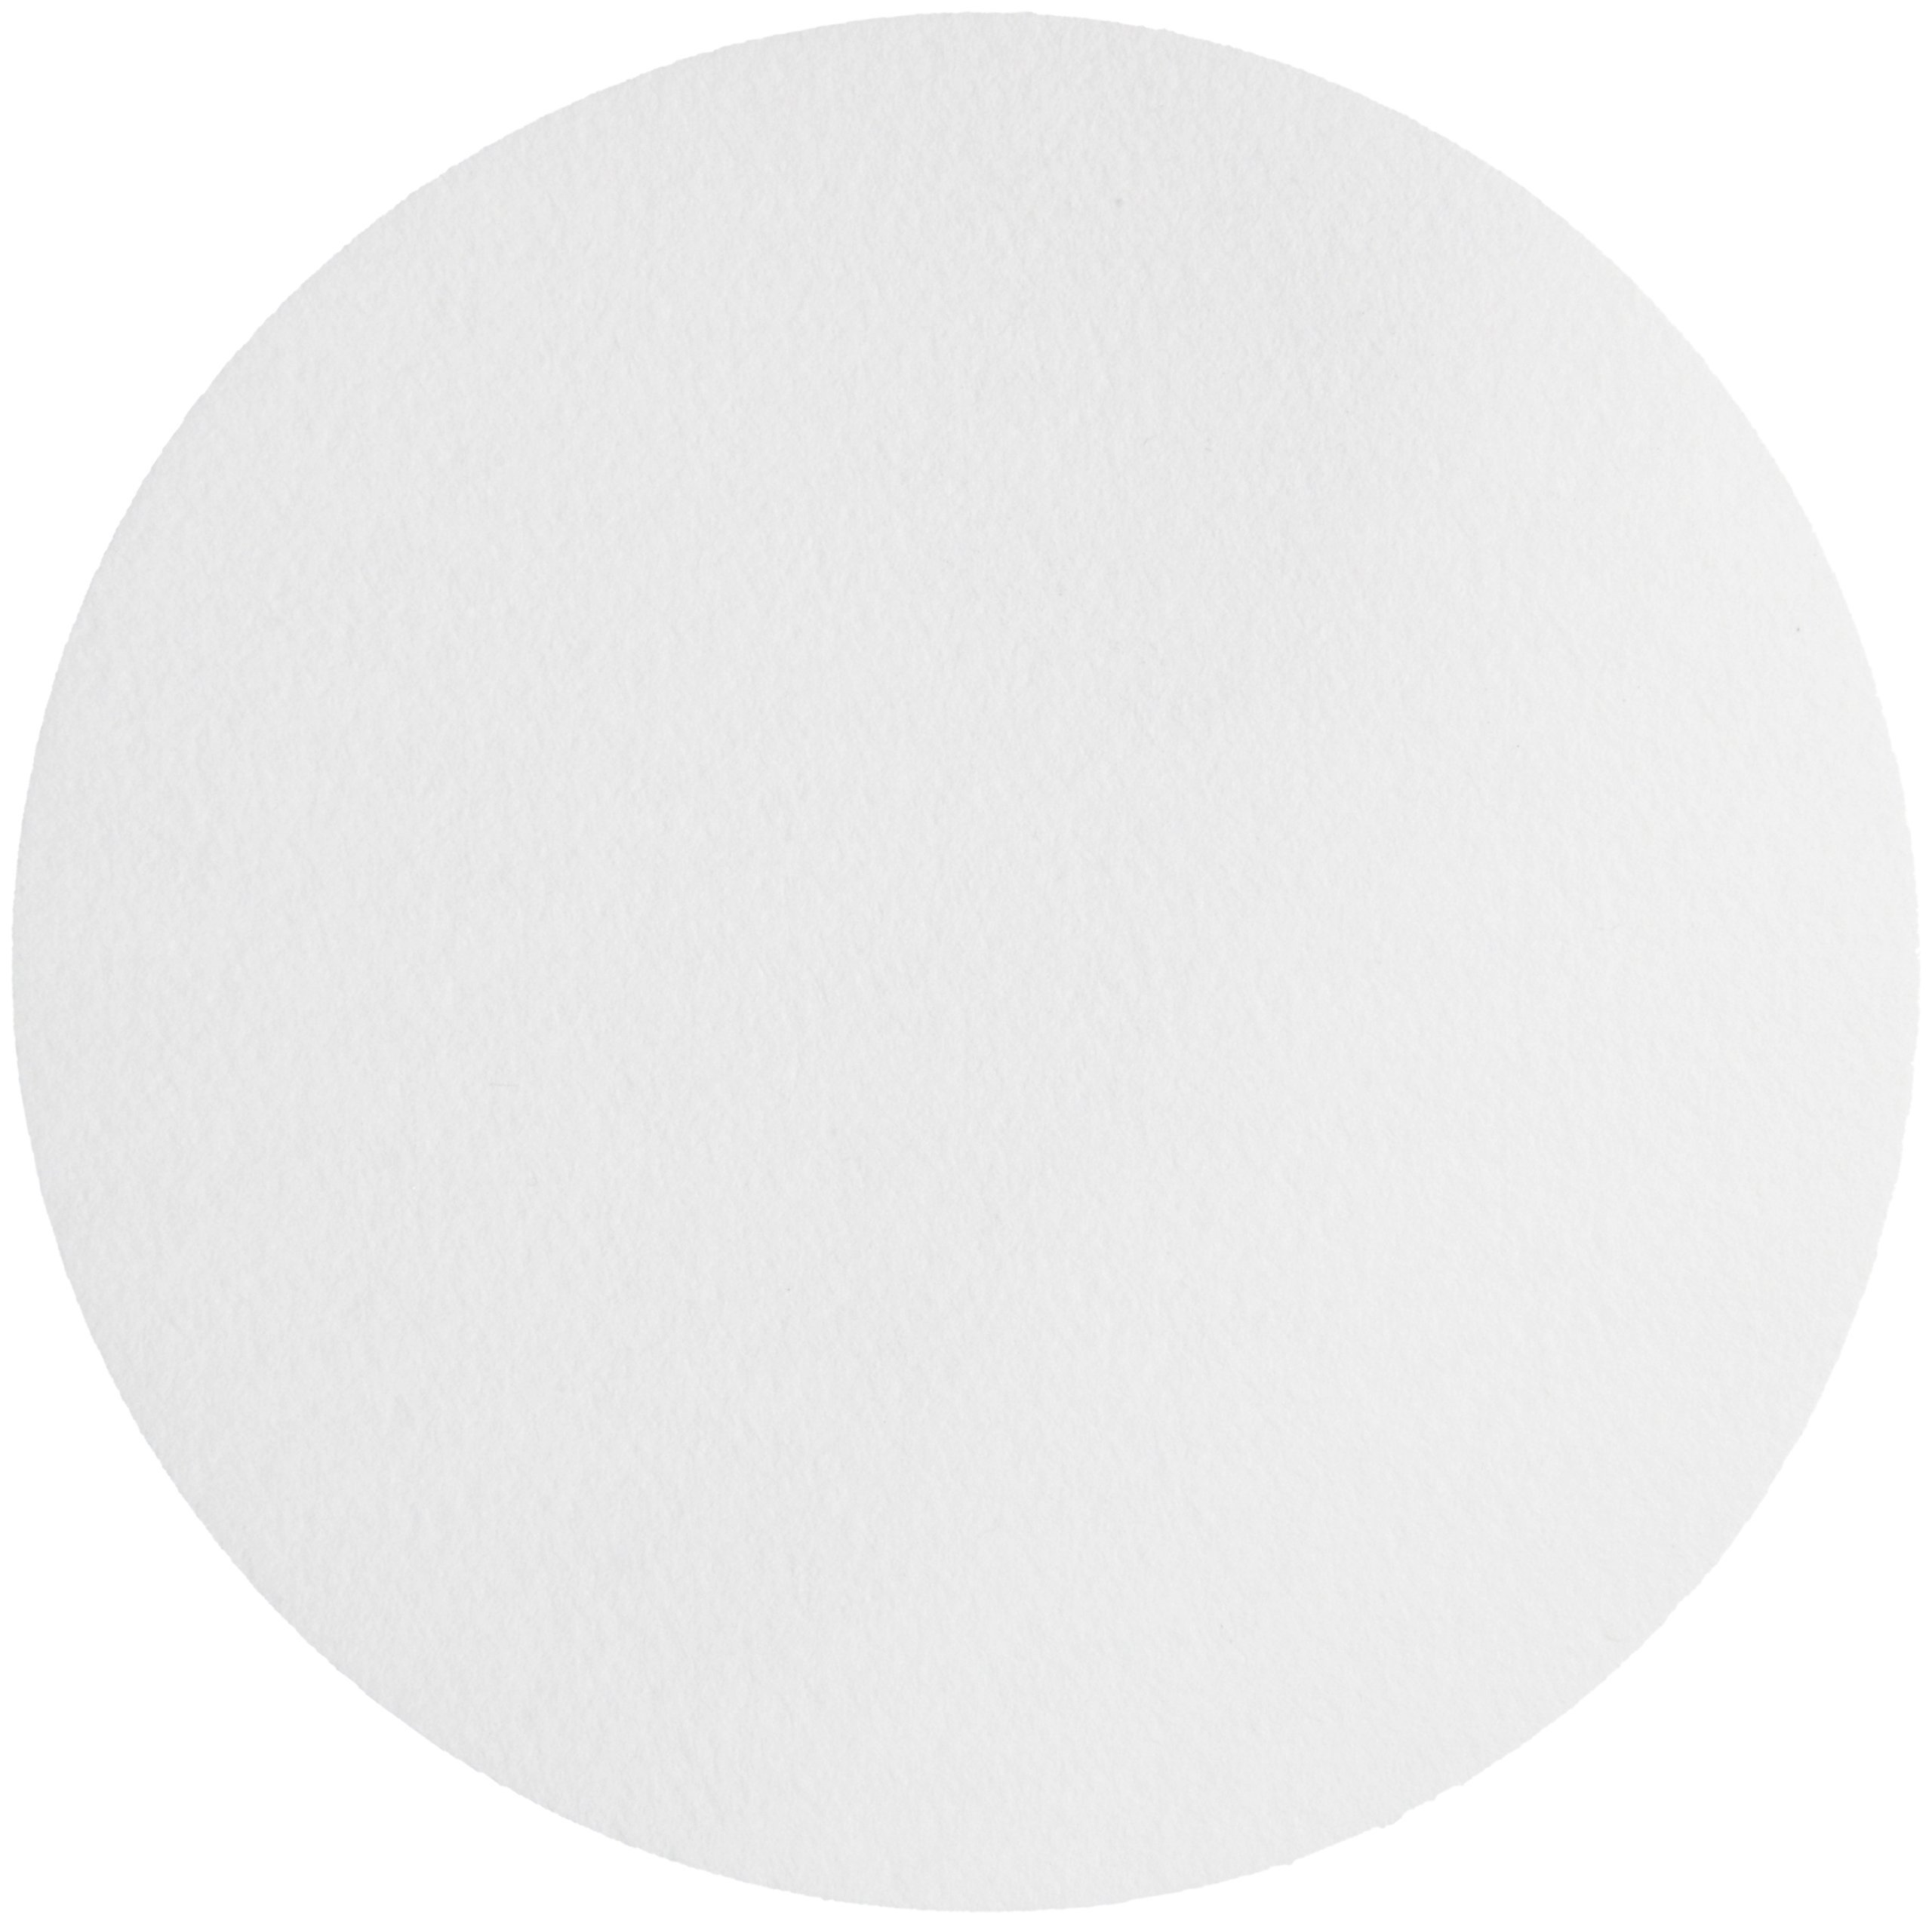 Whatman 1001-150 Qualitative Filter Paper Circles, 11 Micron, 10.5 s/100mL/sq inch Flow Rate, Grade 1, 150mm Diameter (Pack of 100) by Whatman